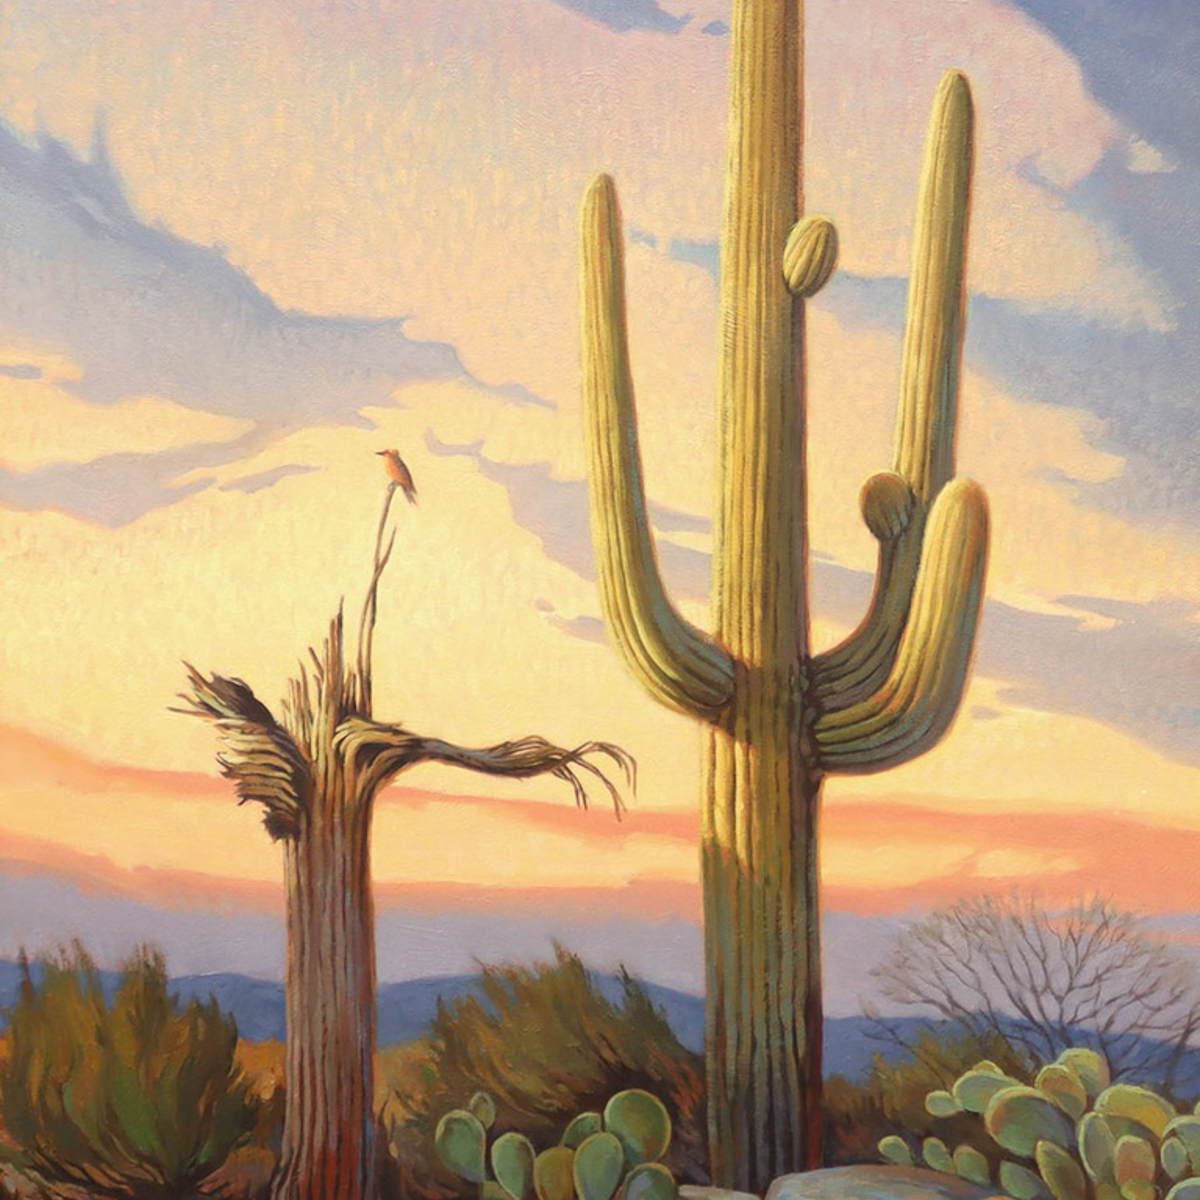 August 27, 2021 New Paintings and Sculpture - Lisa Danielle, Josh Gibson, Veryl Goodnight, David Meikle, Greg Newbold, Victoria Roberts, and Mark Rossi